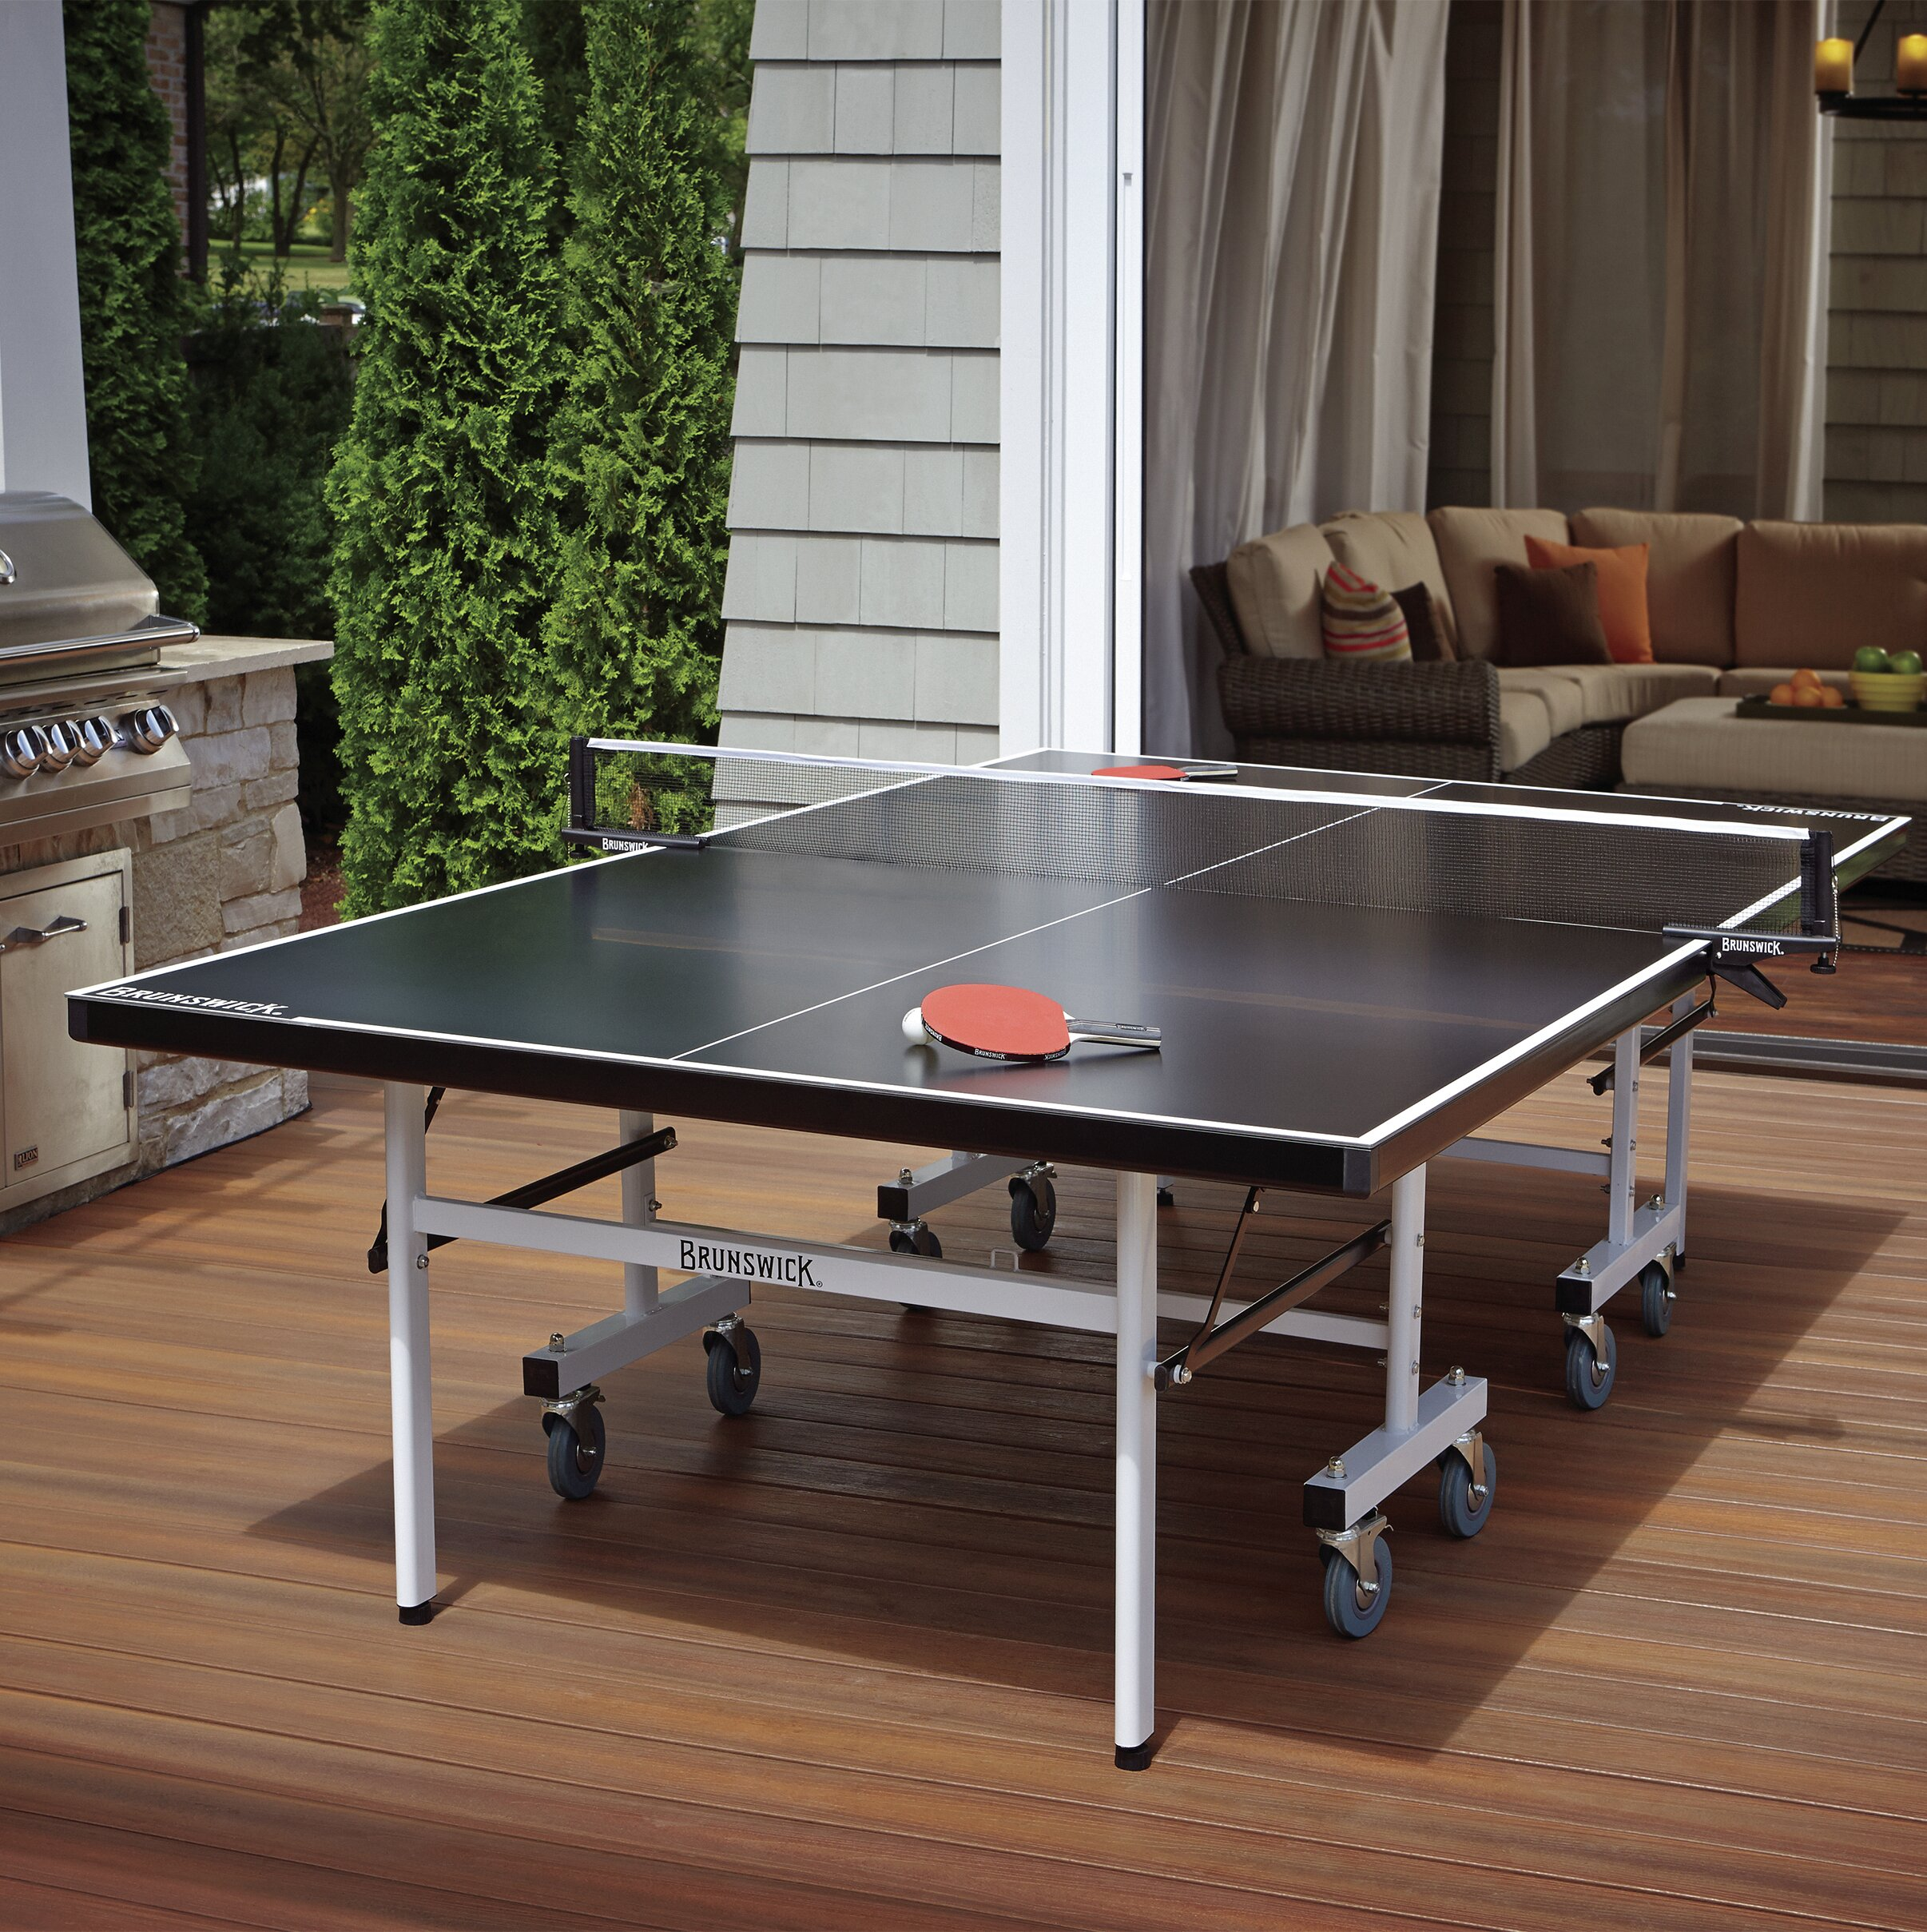 cc87fa33221 Brunswick Billiards Smash Folding Indoor Outdoor Table Tennis Table ...